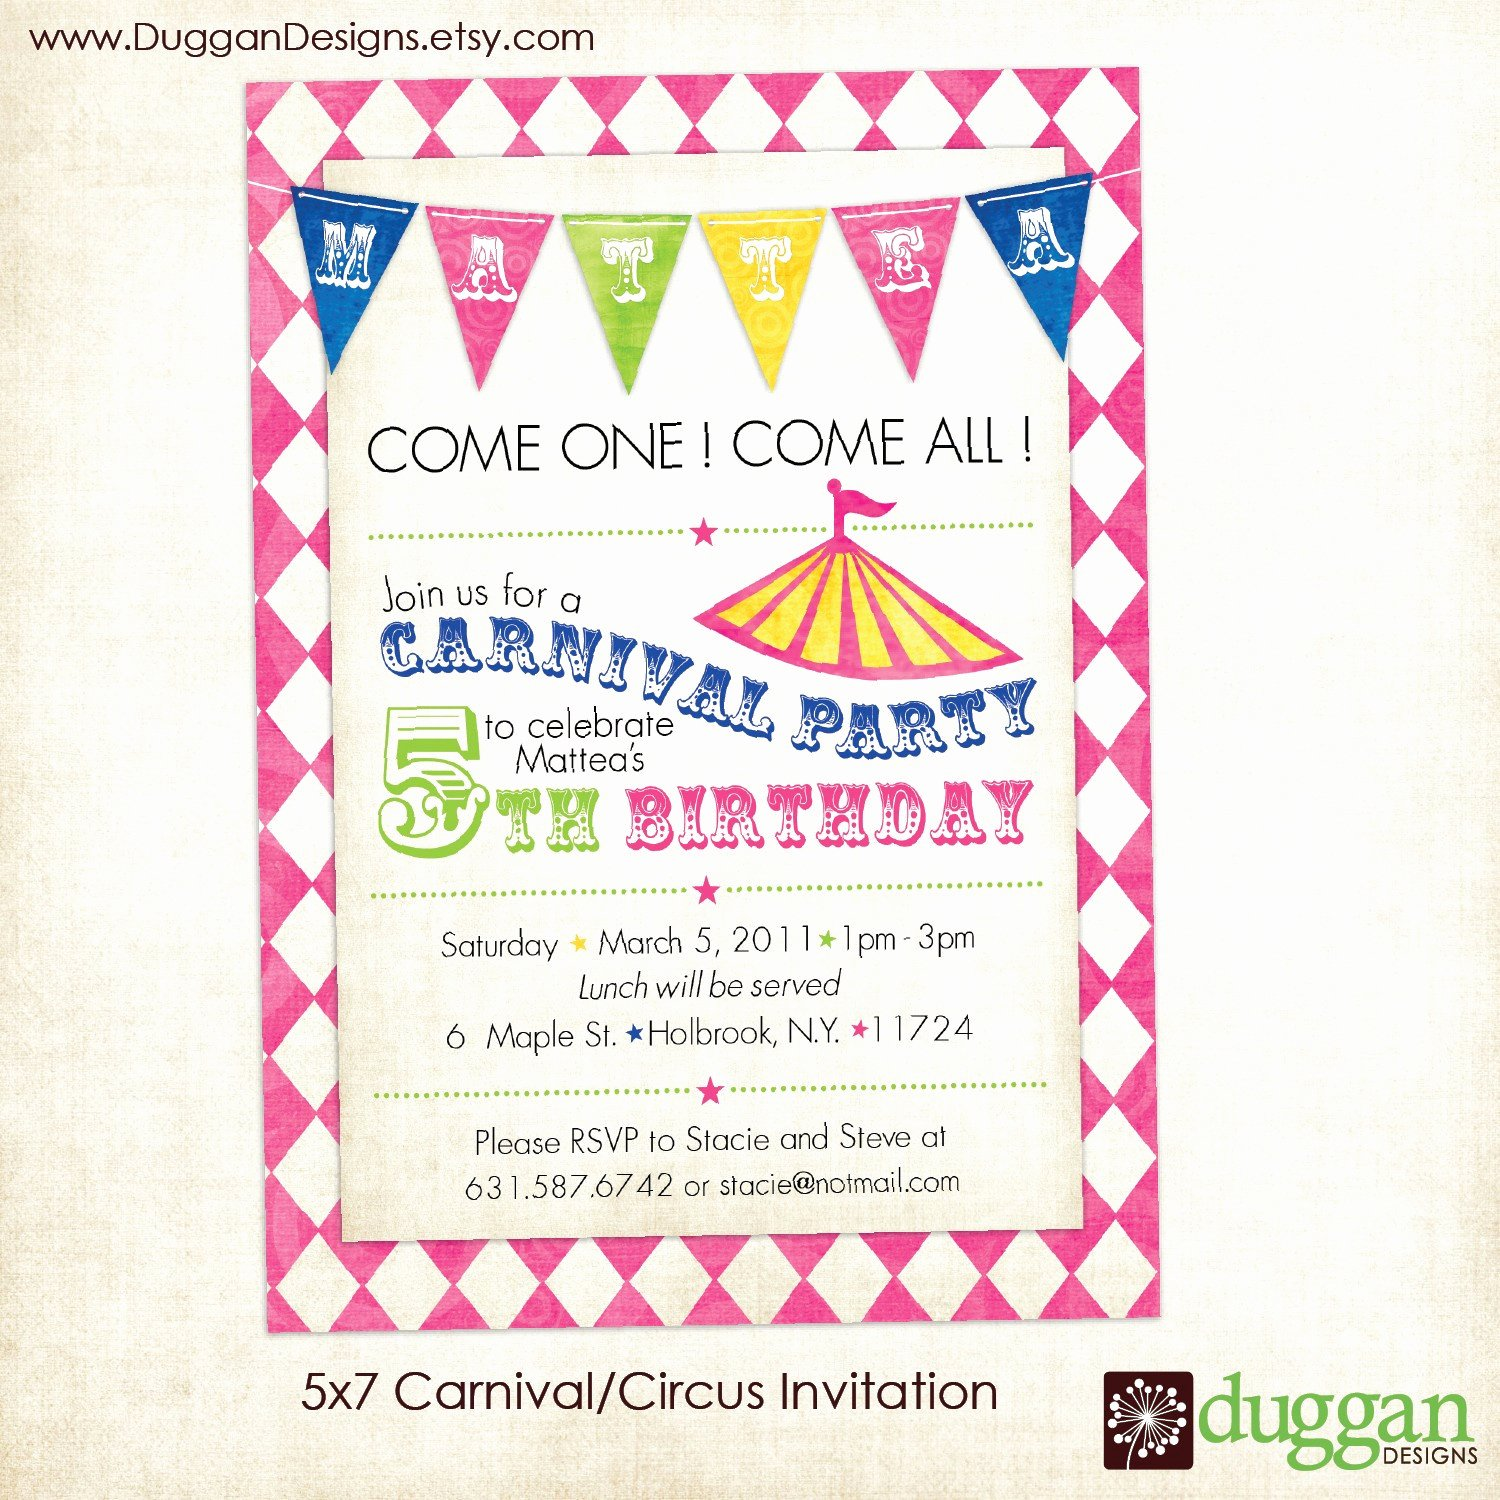 Carnival Birthday Party Invitations Unique Printable Circus or Carnival Birthday Invitation by Duggandesigns